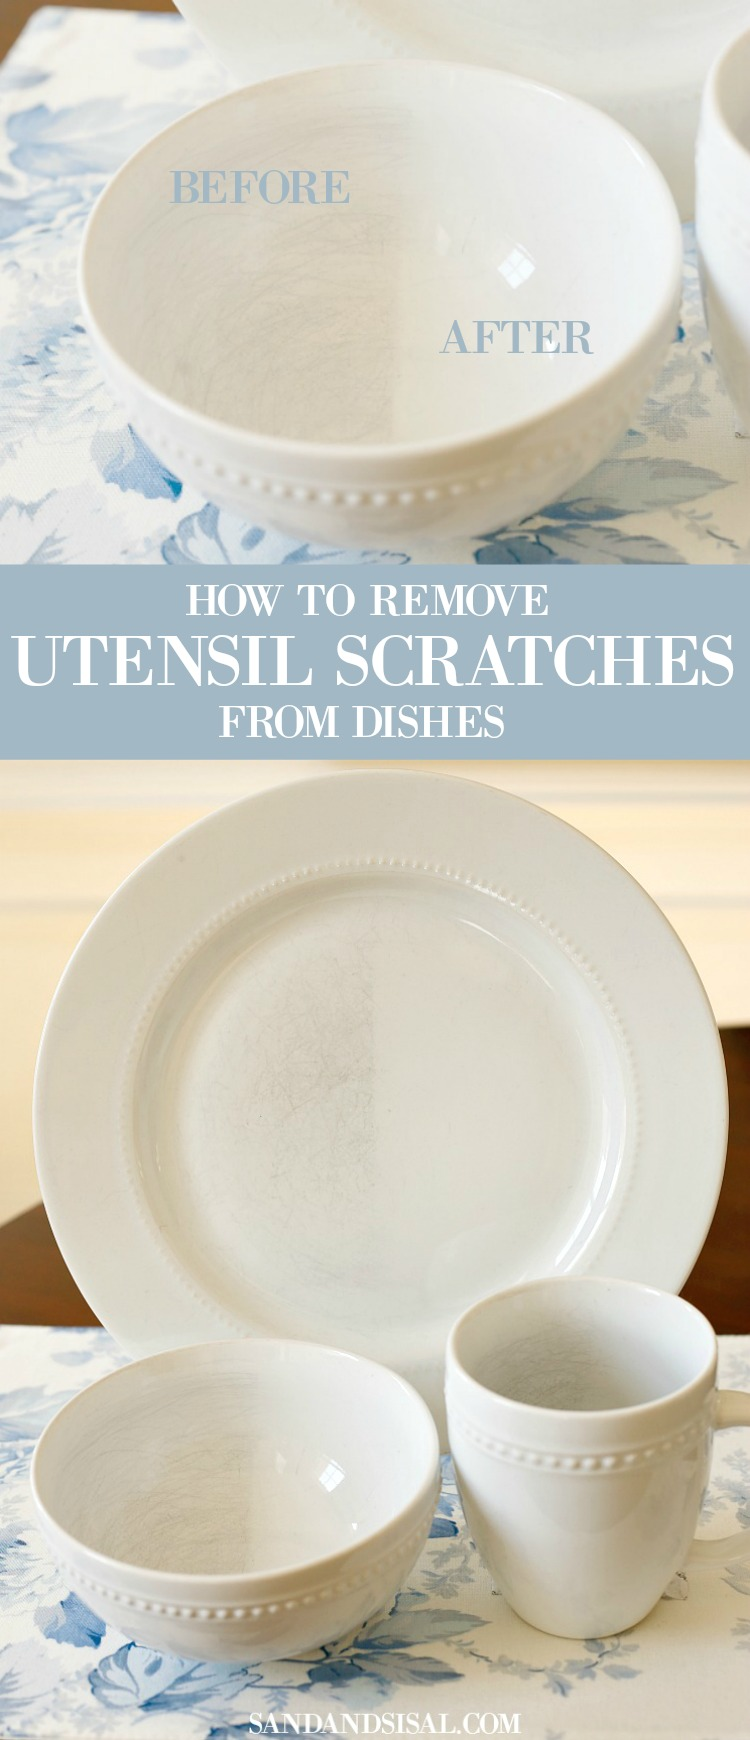 how-to-remove-utensil-scratches-from-dishes-sand-and-sisal